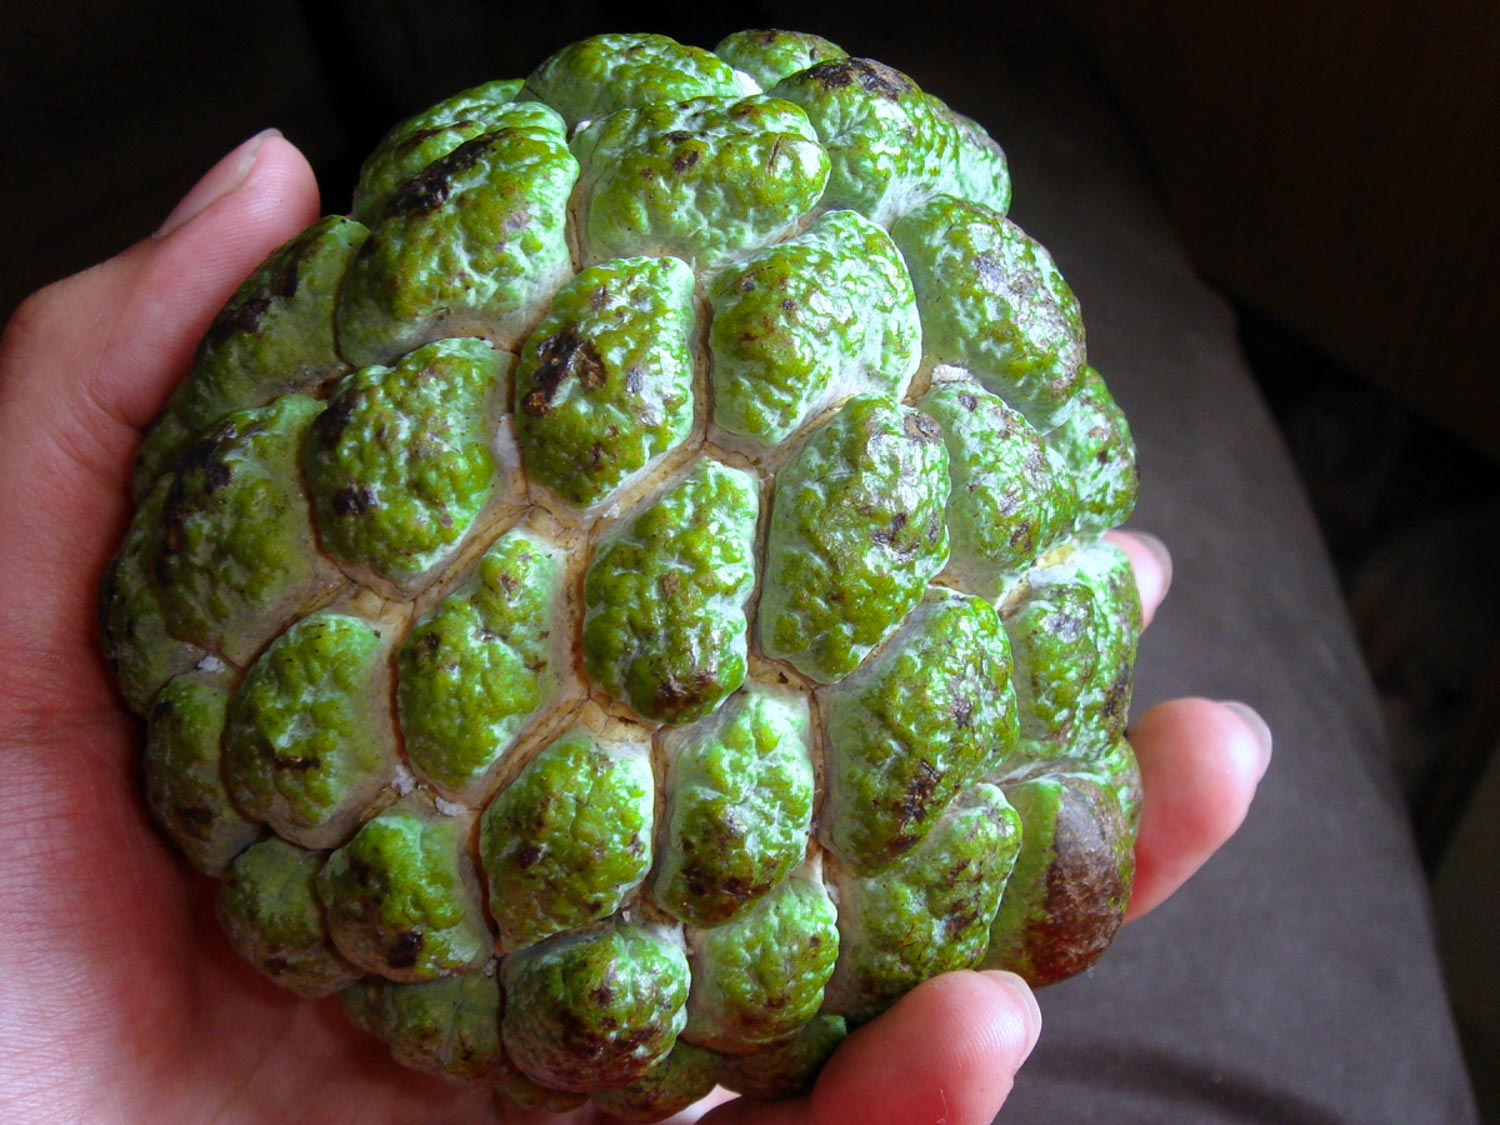 Sweetsop is one of the tastiest exotic fruits and is found in Latin America and the Caribbean.